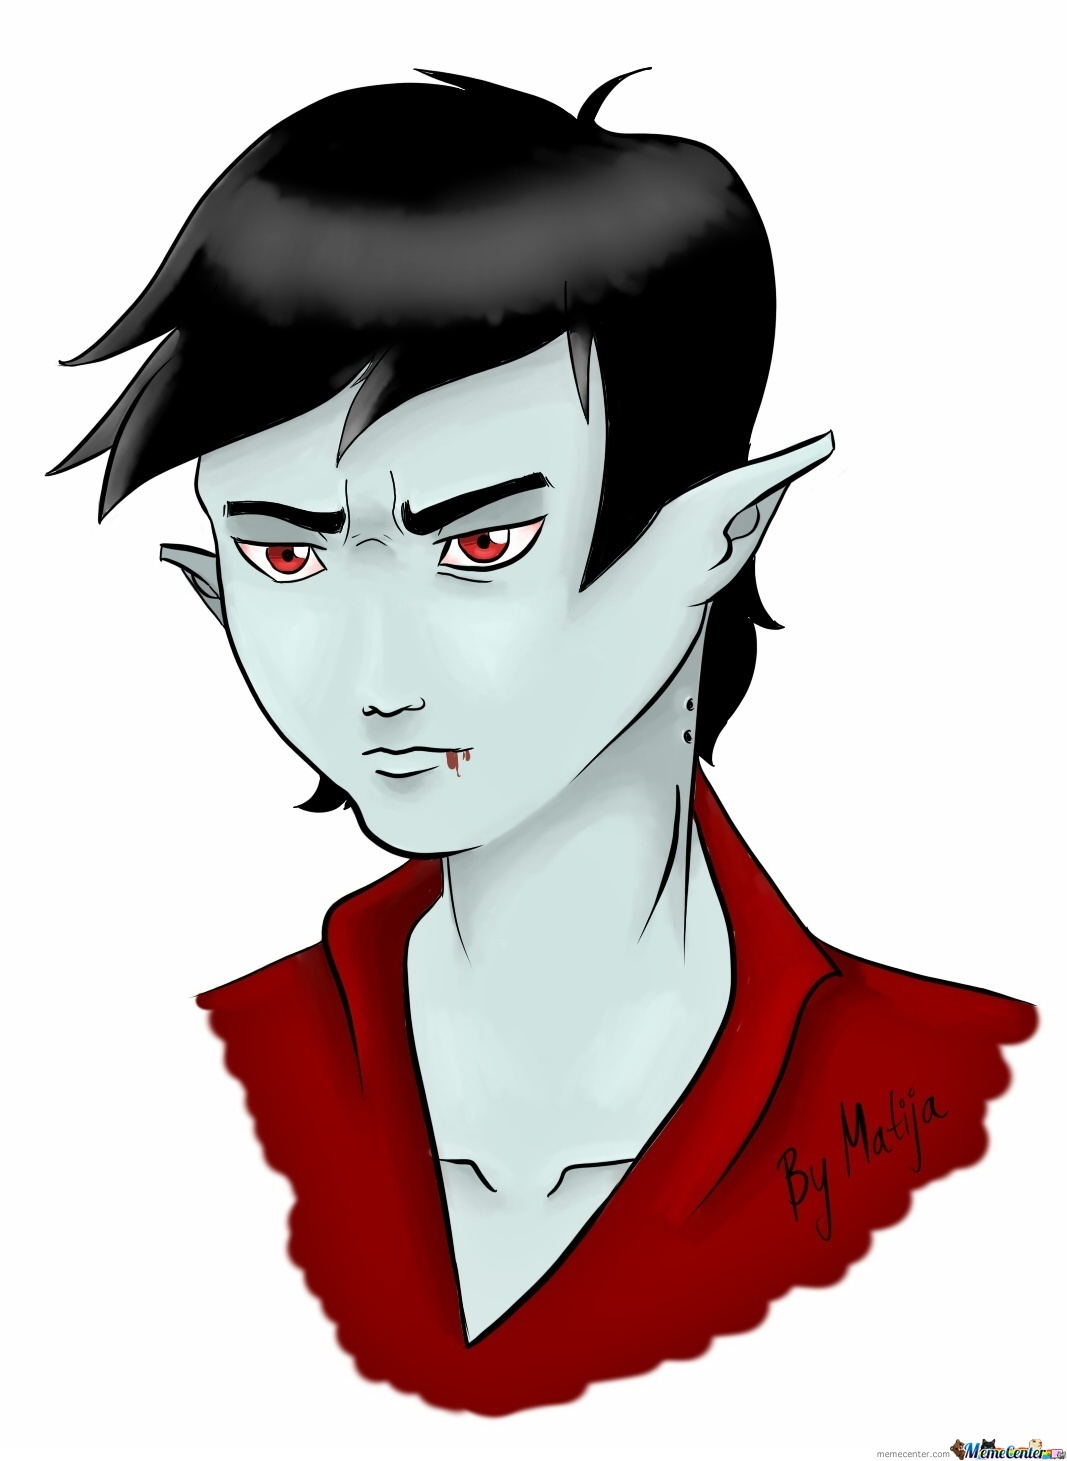 Best Work Ever Made - Marshall Lee